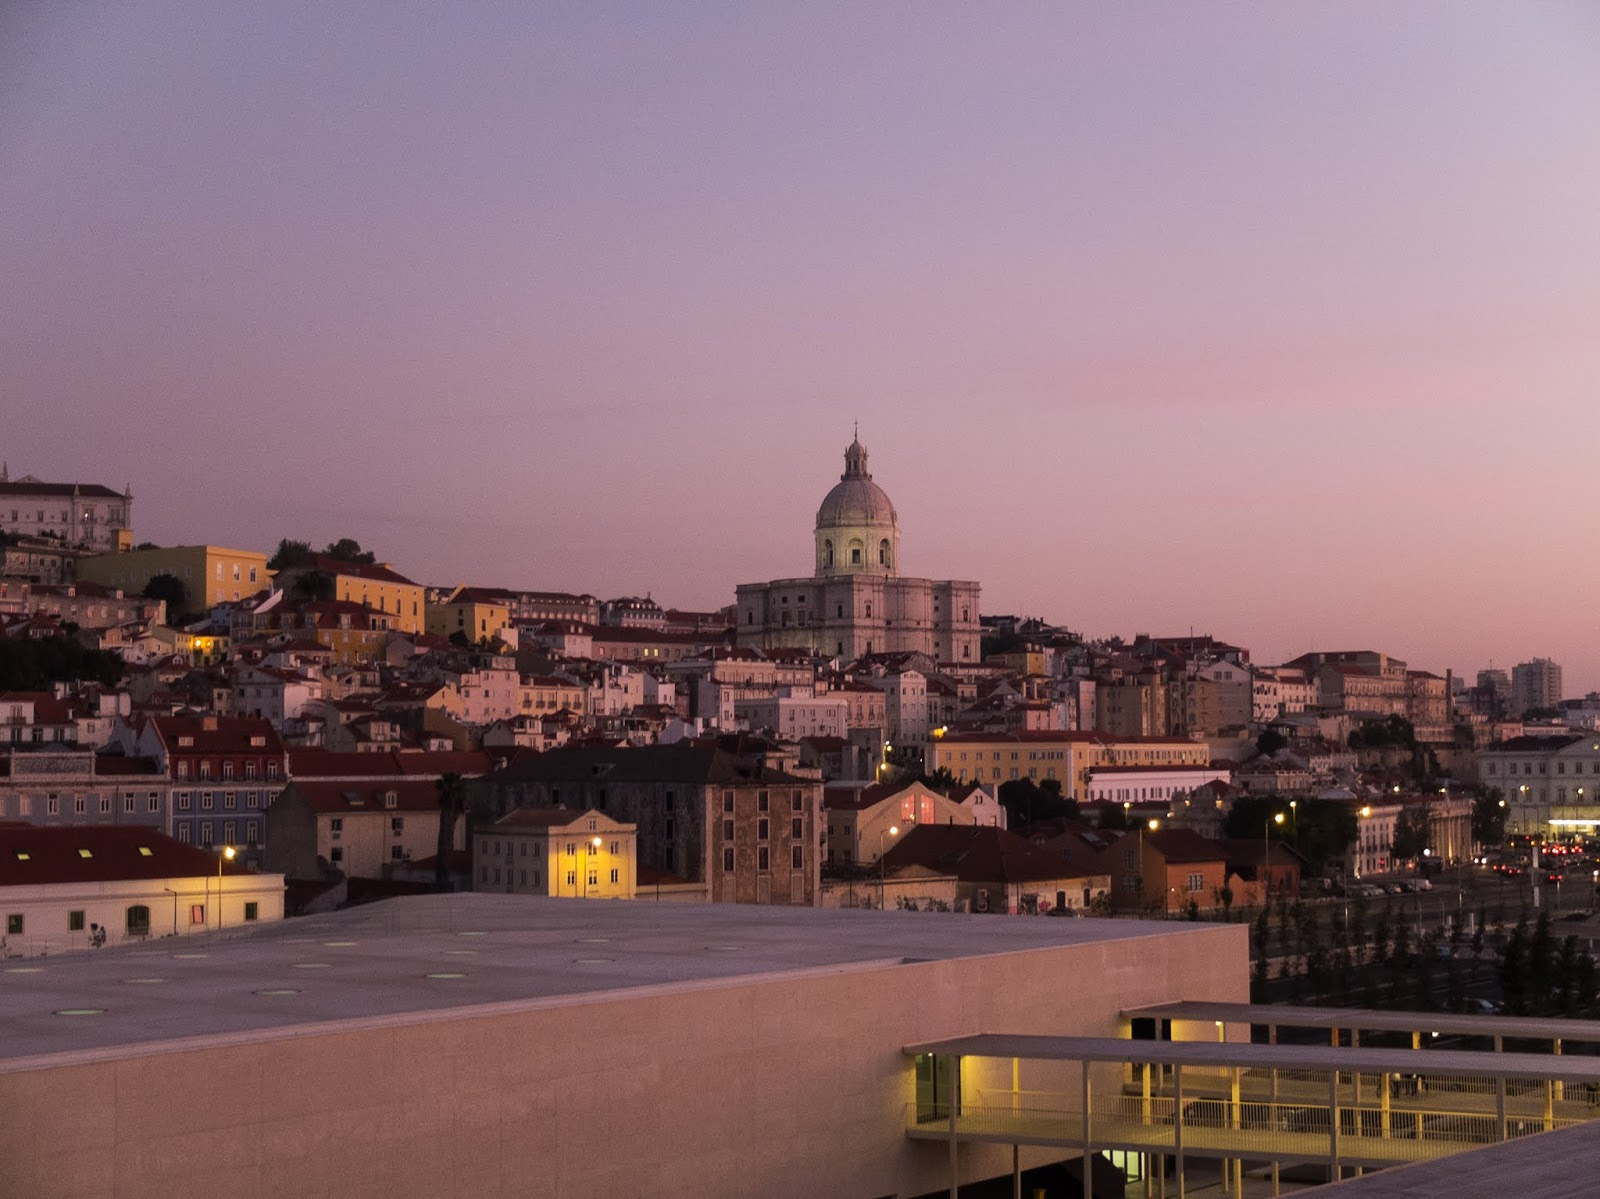 Sunrise in the docklands of Lisbon looking towards the city.